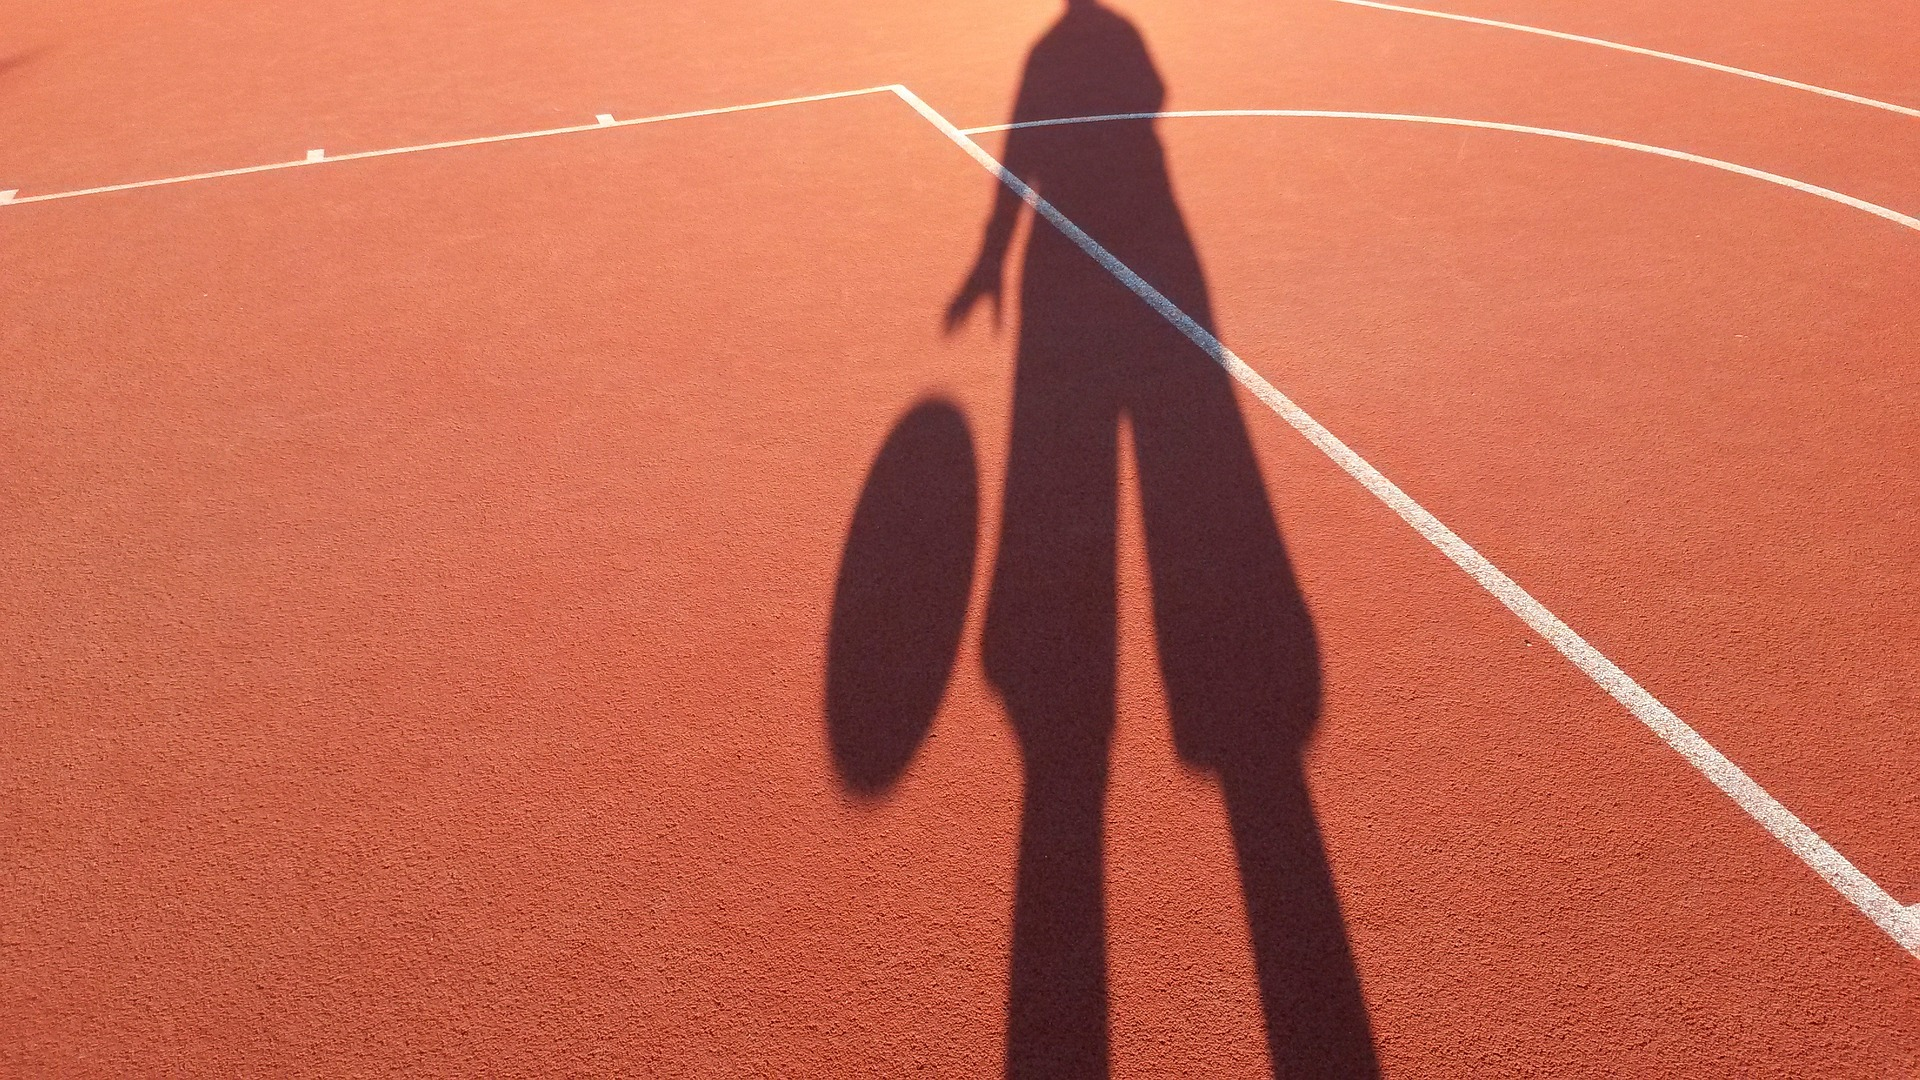 The Man Defined - basketball player shadow on outdoor court